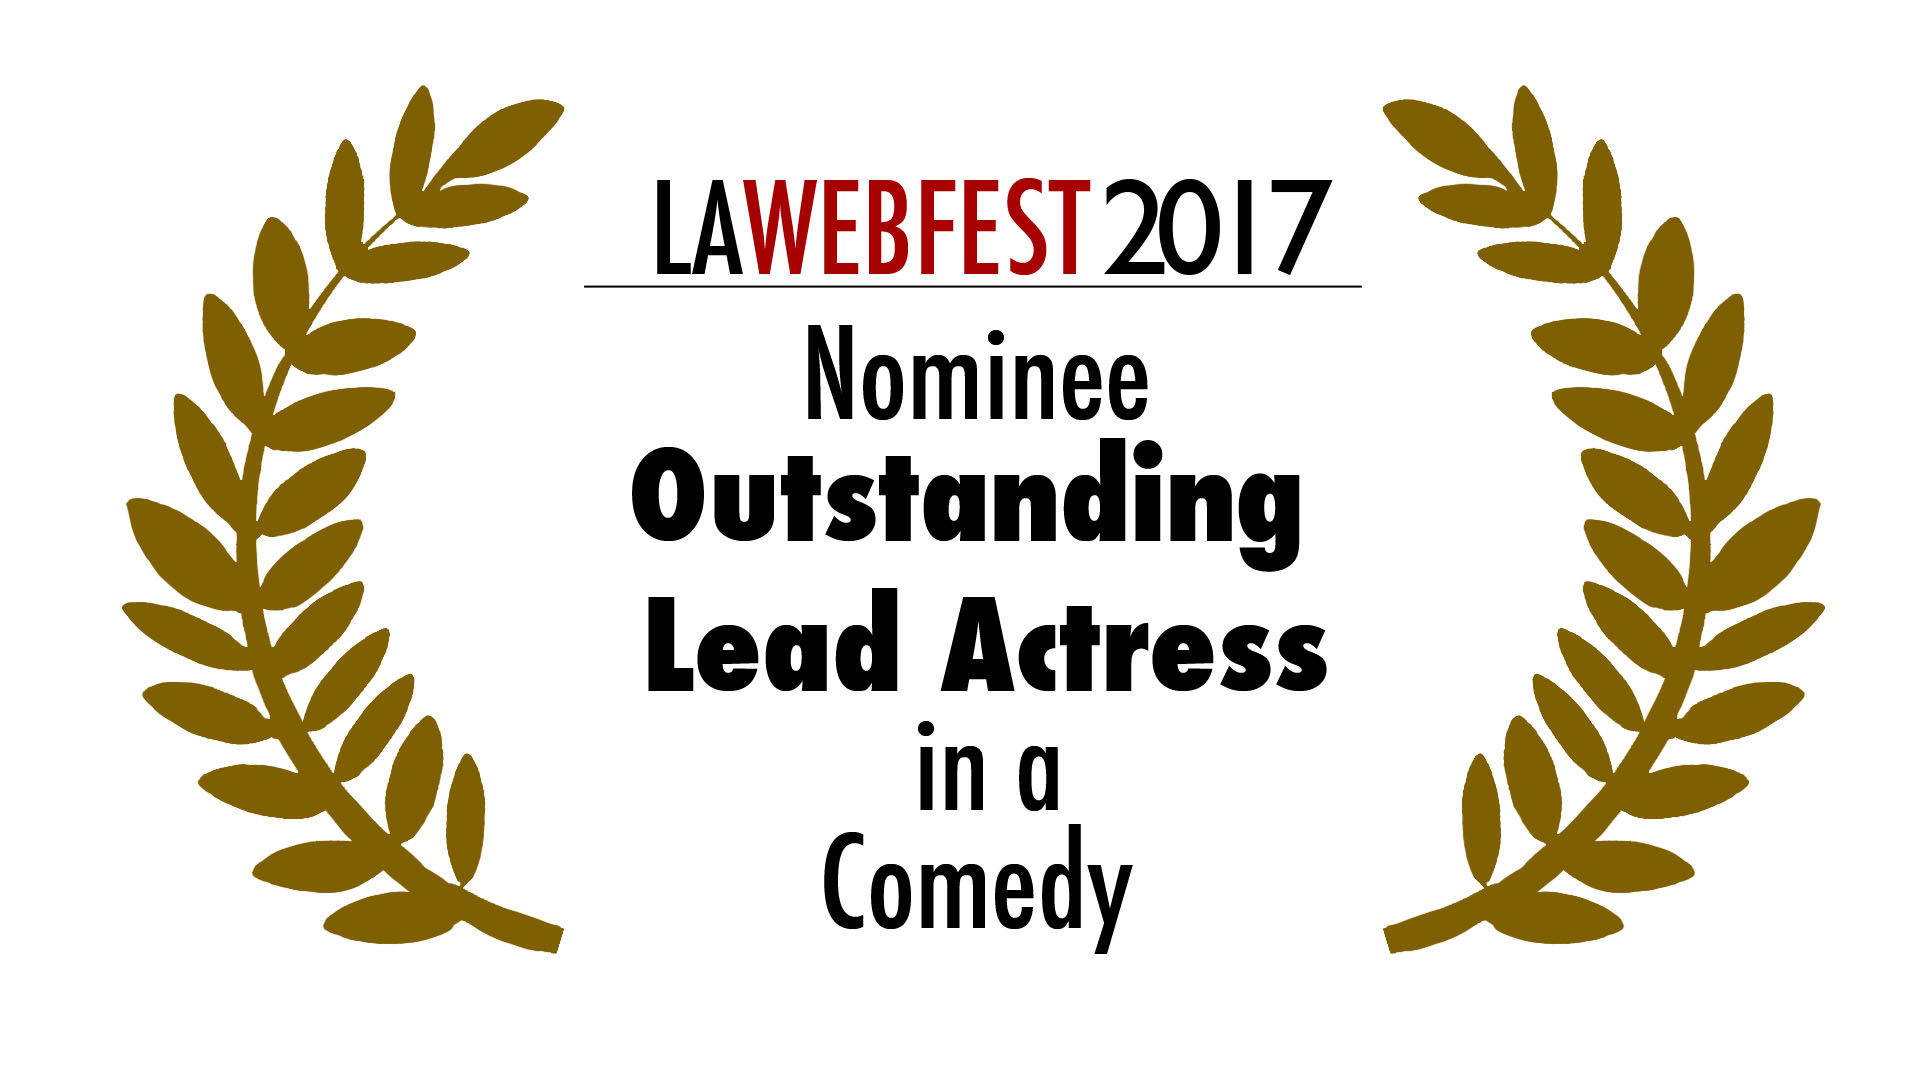 LA Webfest 2017 Lead Actress nominee